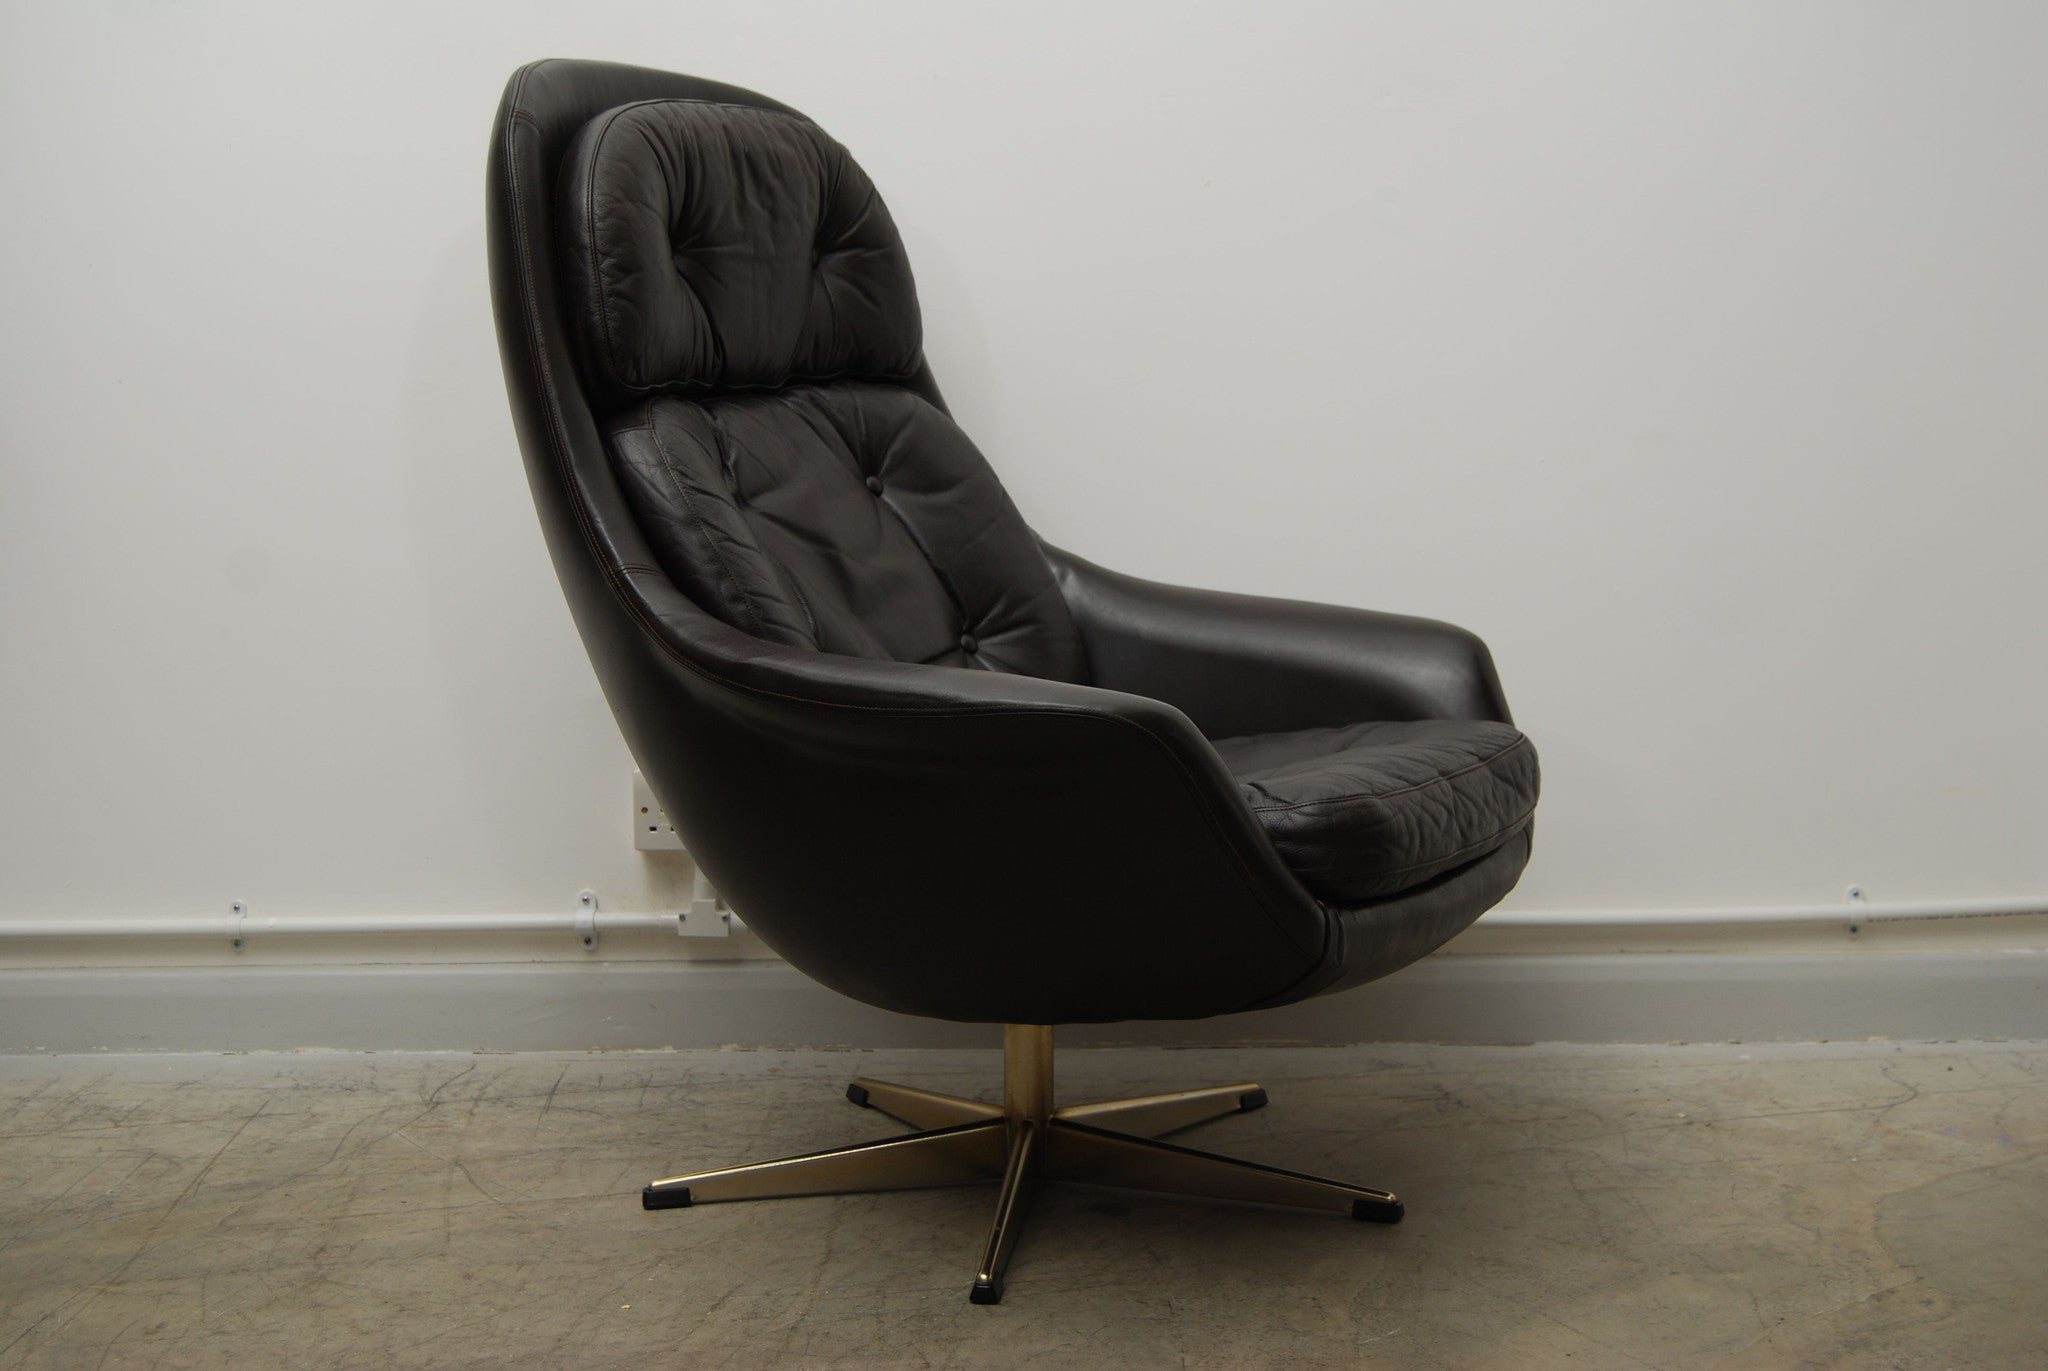 Chase & Sorensen Bucket chair by H.W. Klein